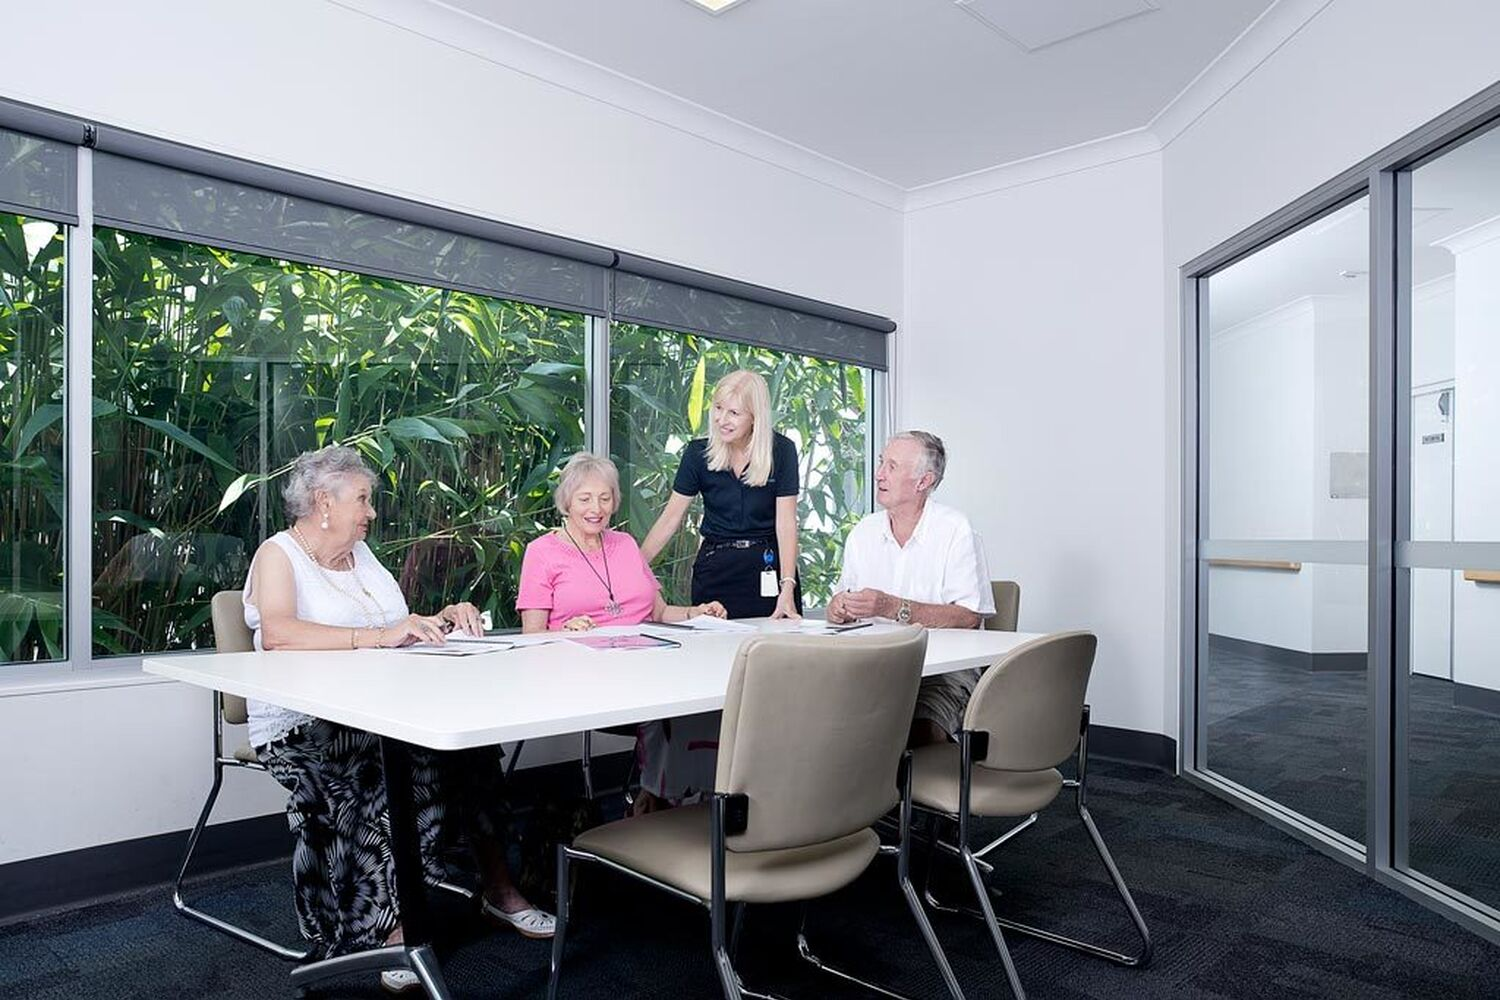 Mh Bph Group Therapy Older Persons3 1157